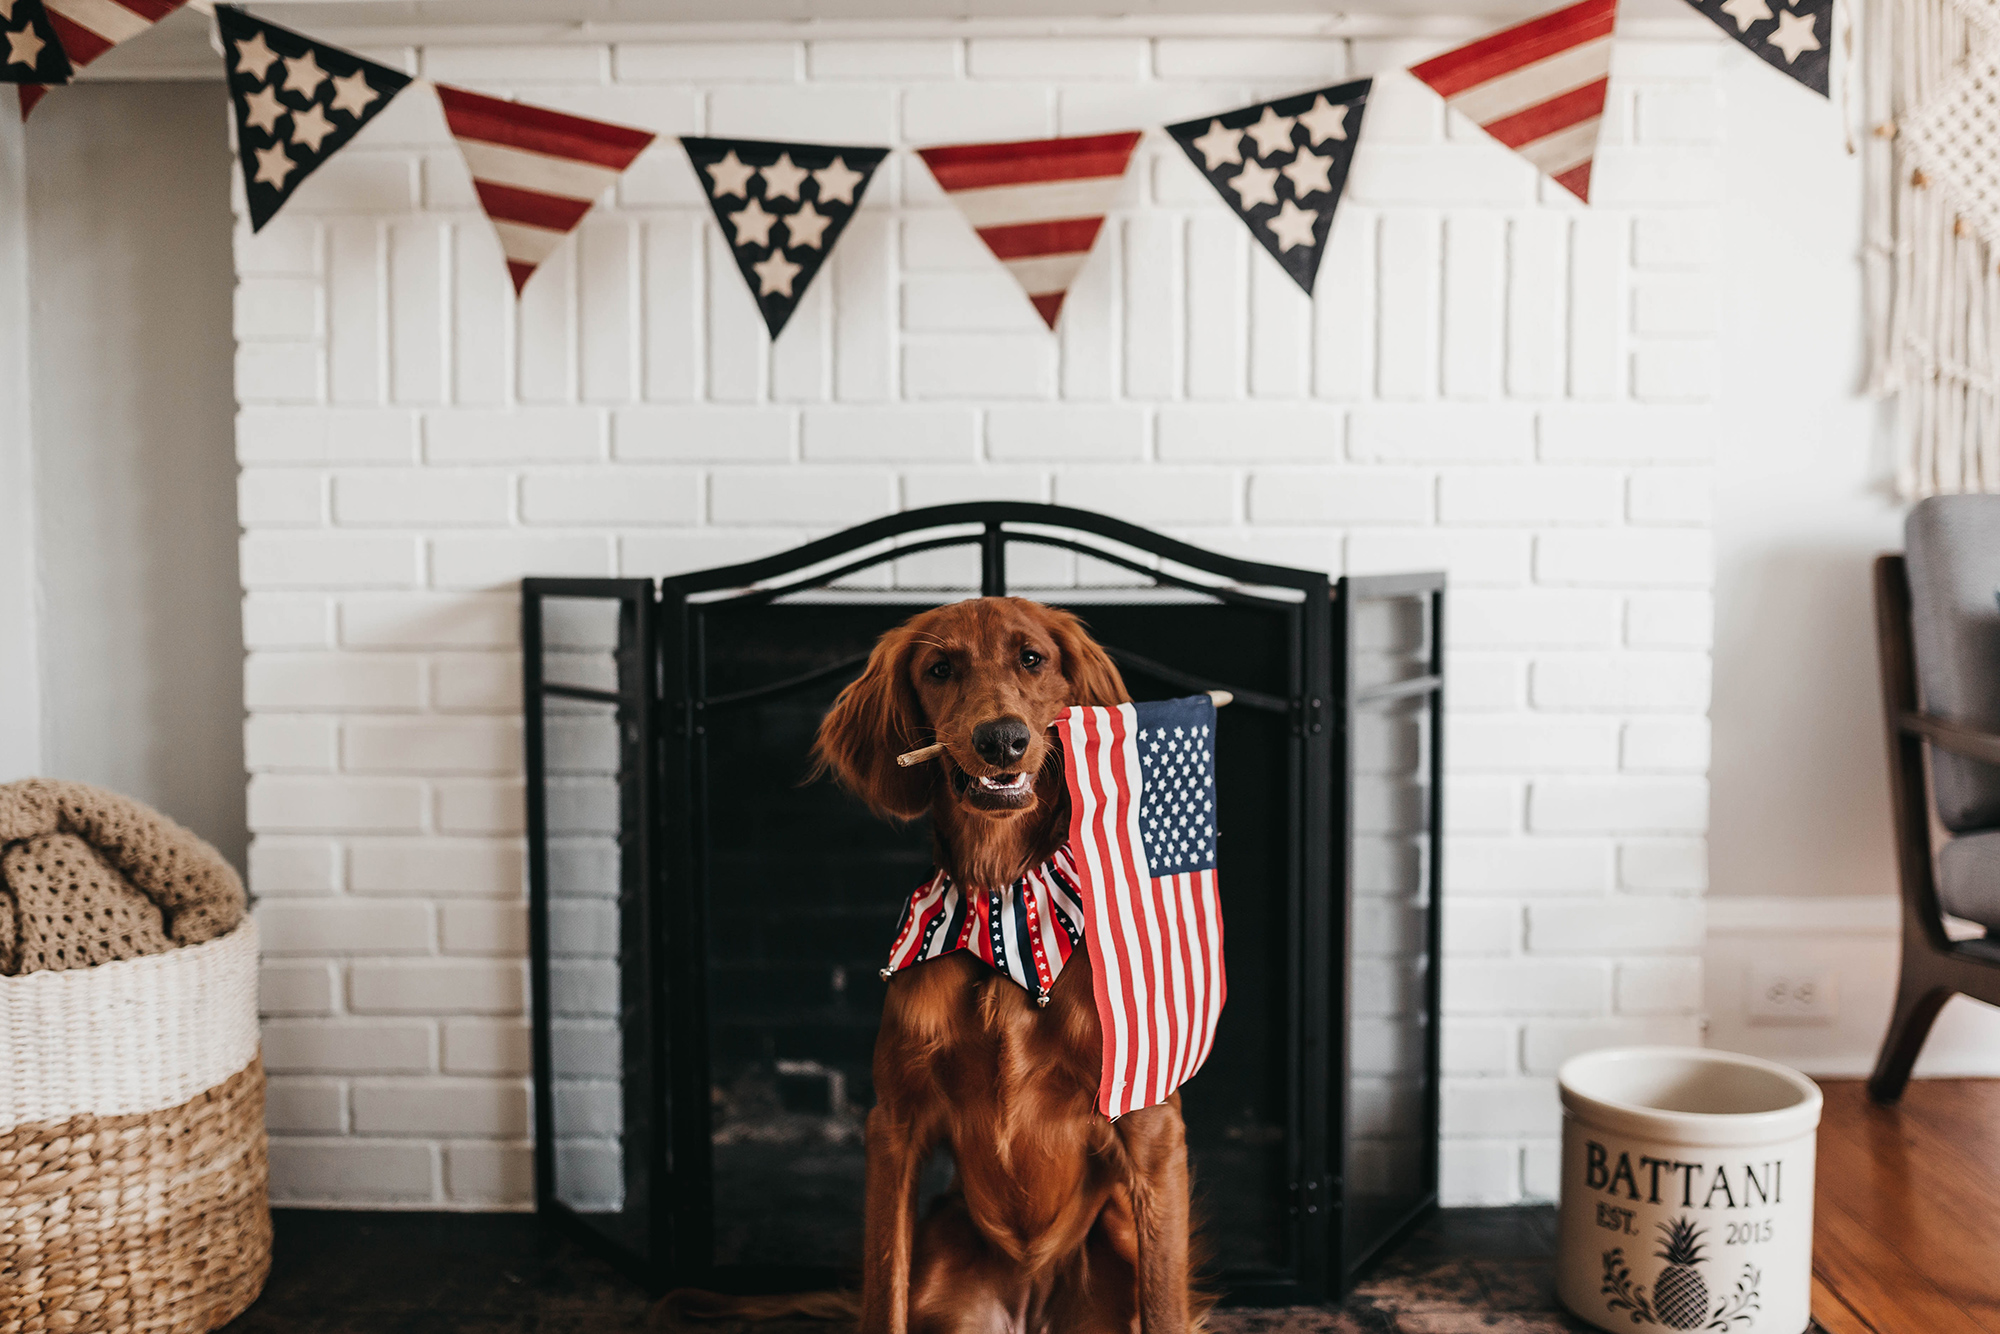 Dog holding American flag in its mouth